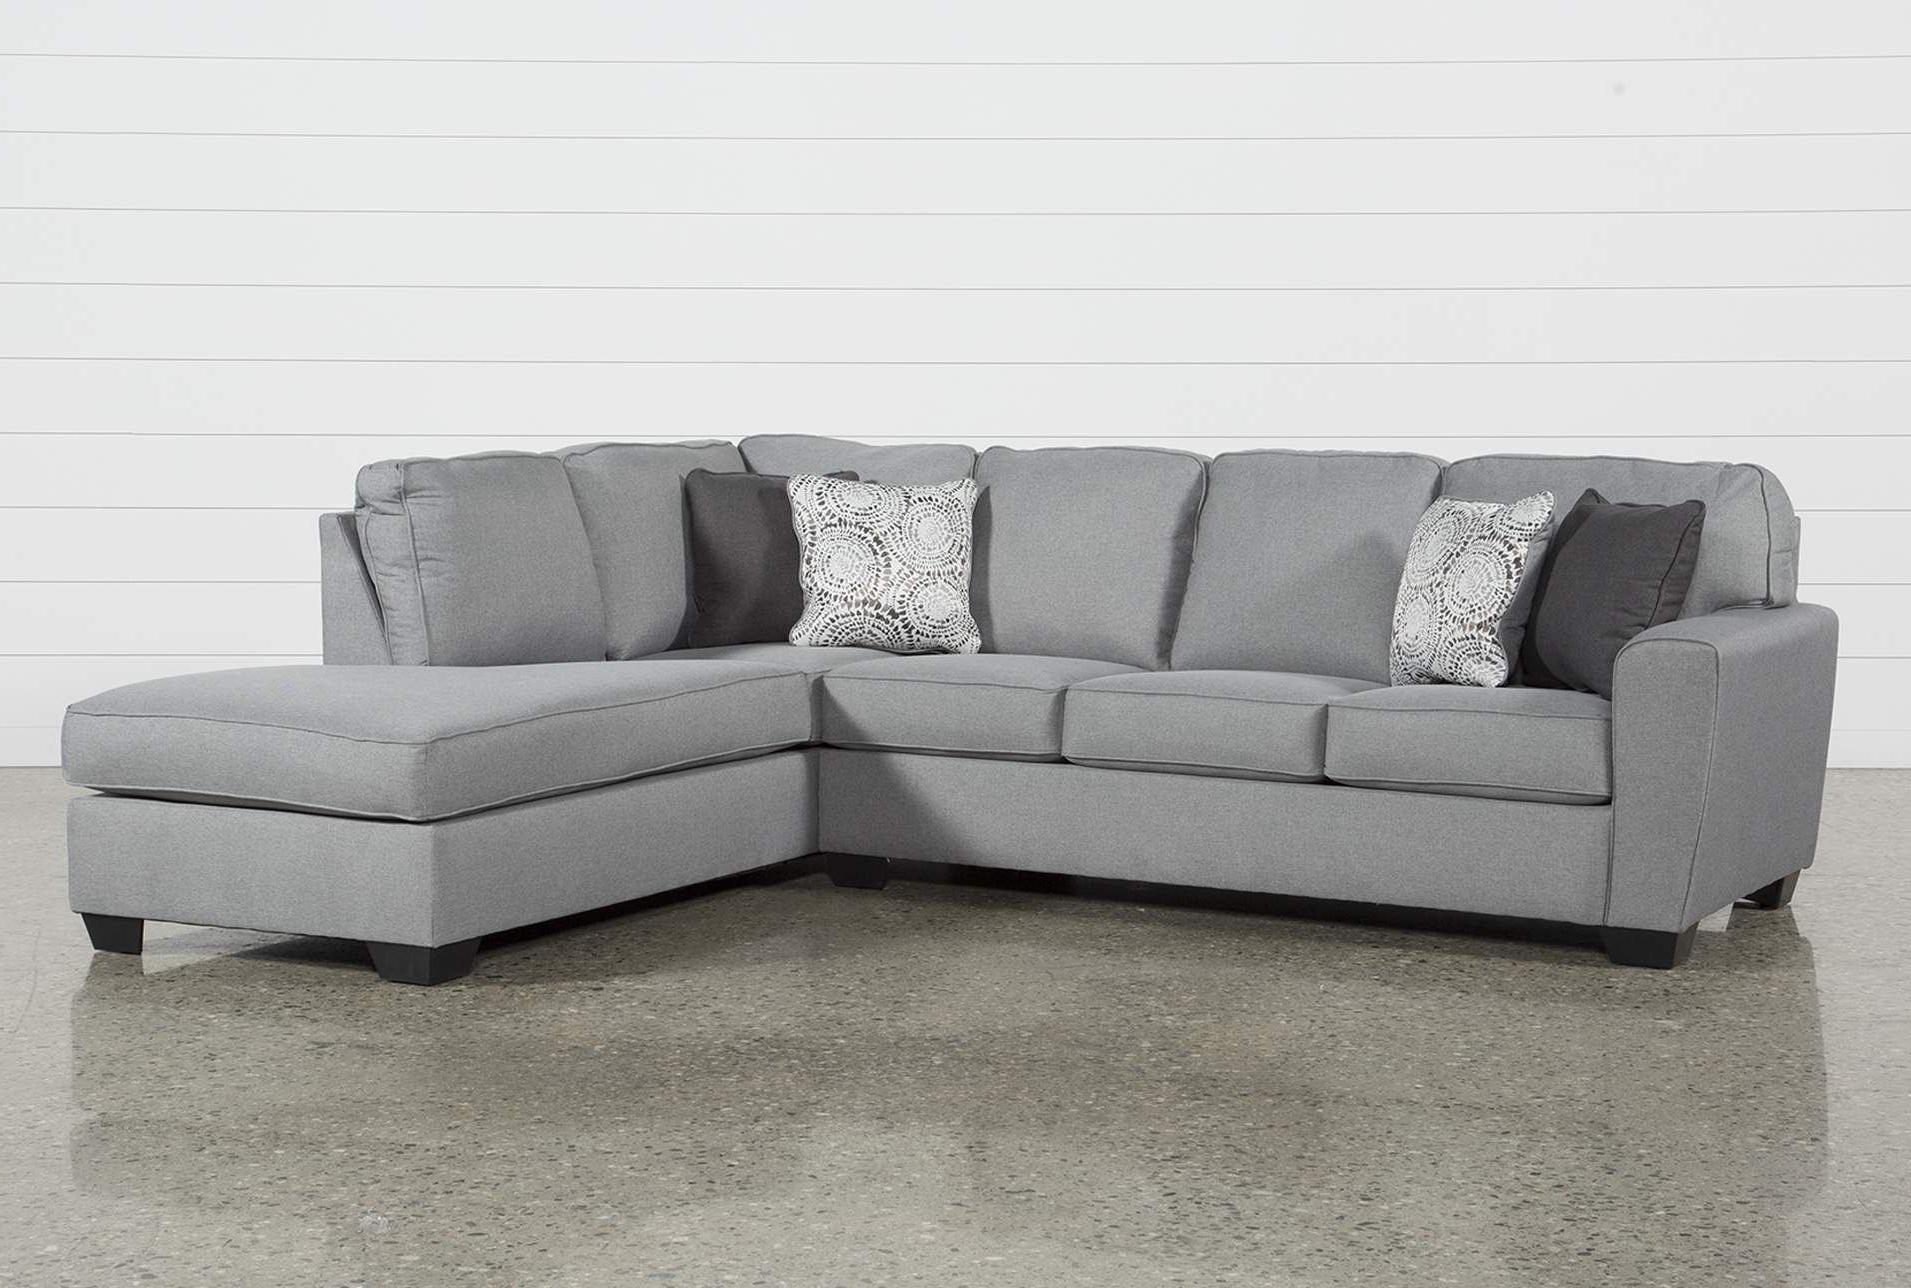 Latest Mcdade Graphite 2 Piece Sectionals With Raf Chaise For Mcdade Ash 2 Piece Sectional W/raf Chaise (View 11 of 20)